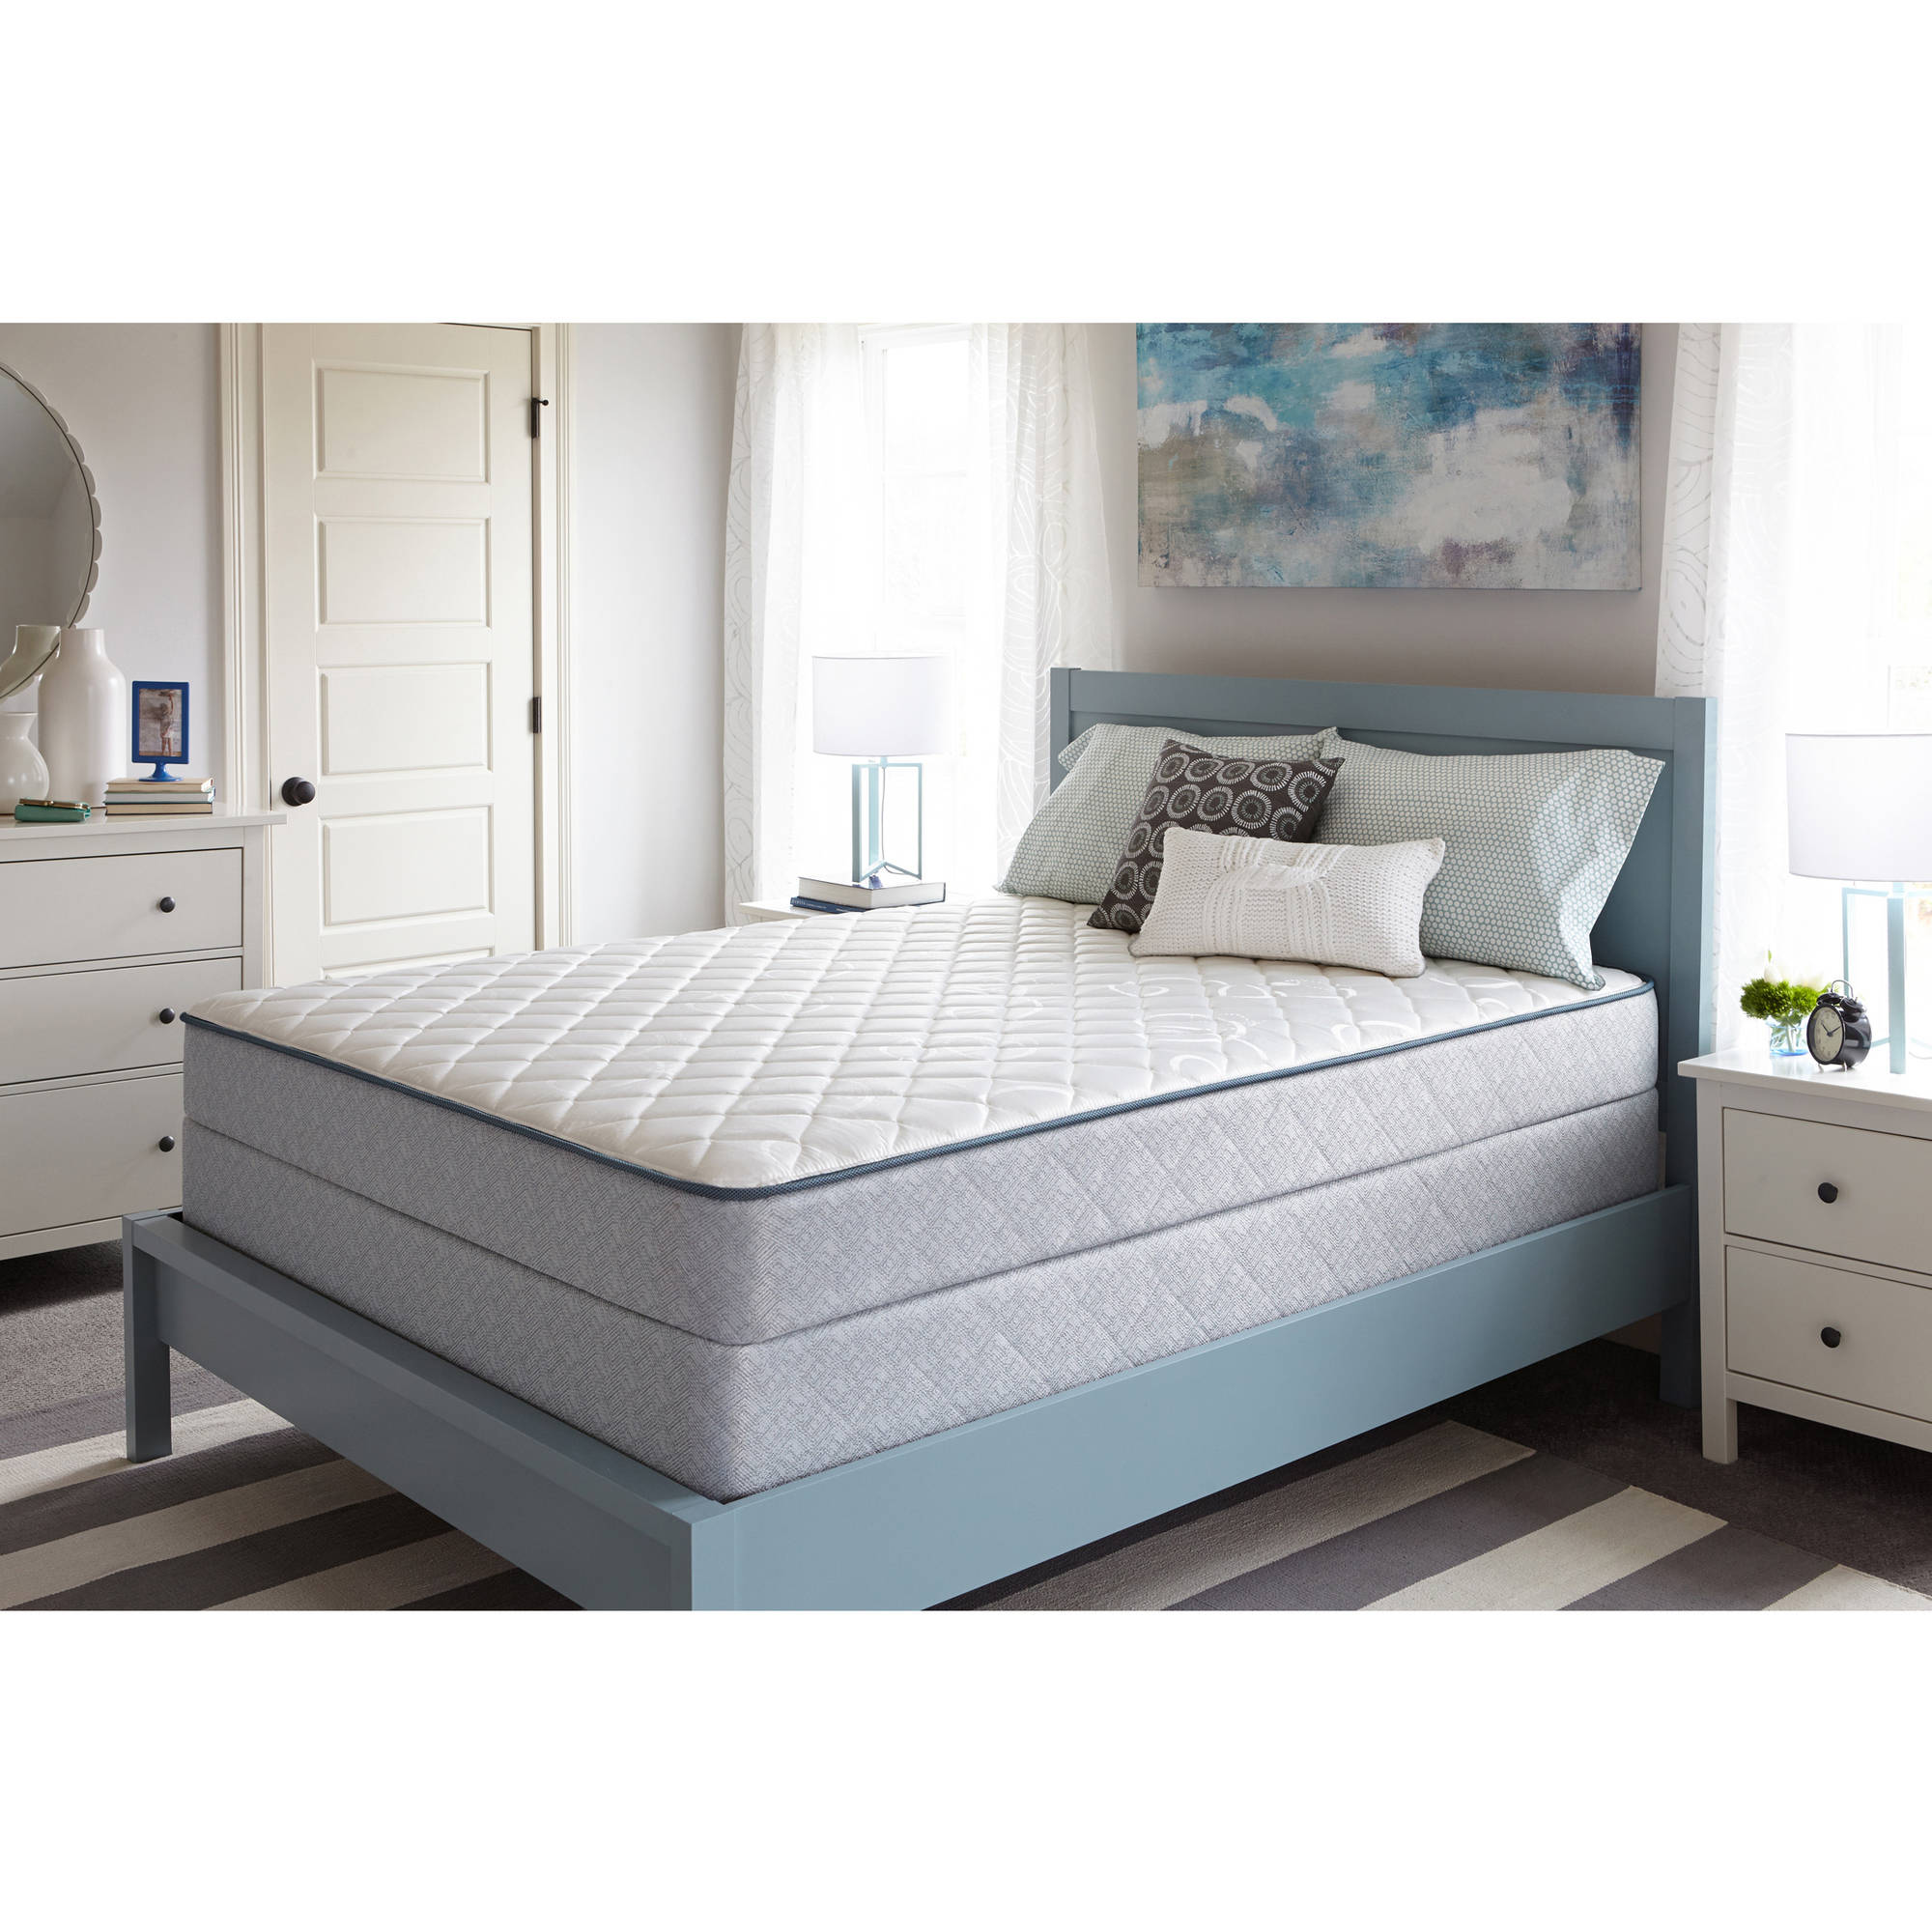 Sealy Brand Firm Fort Thomas Mattress, Multiple Sizes